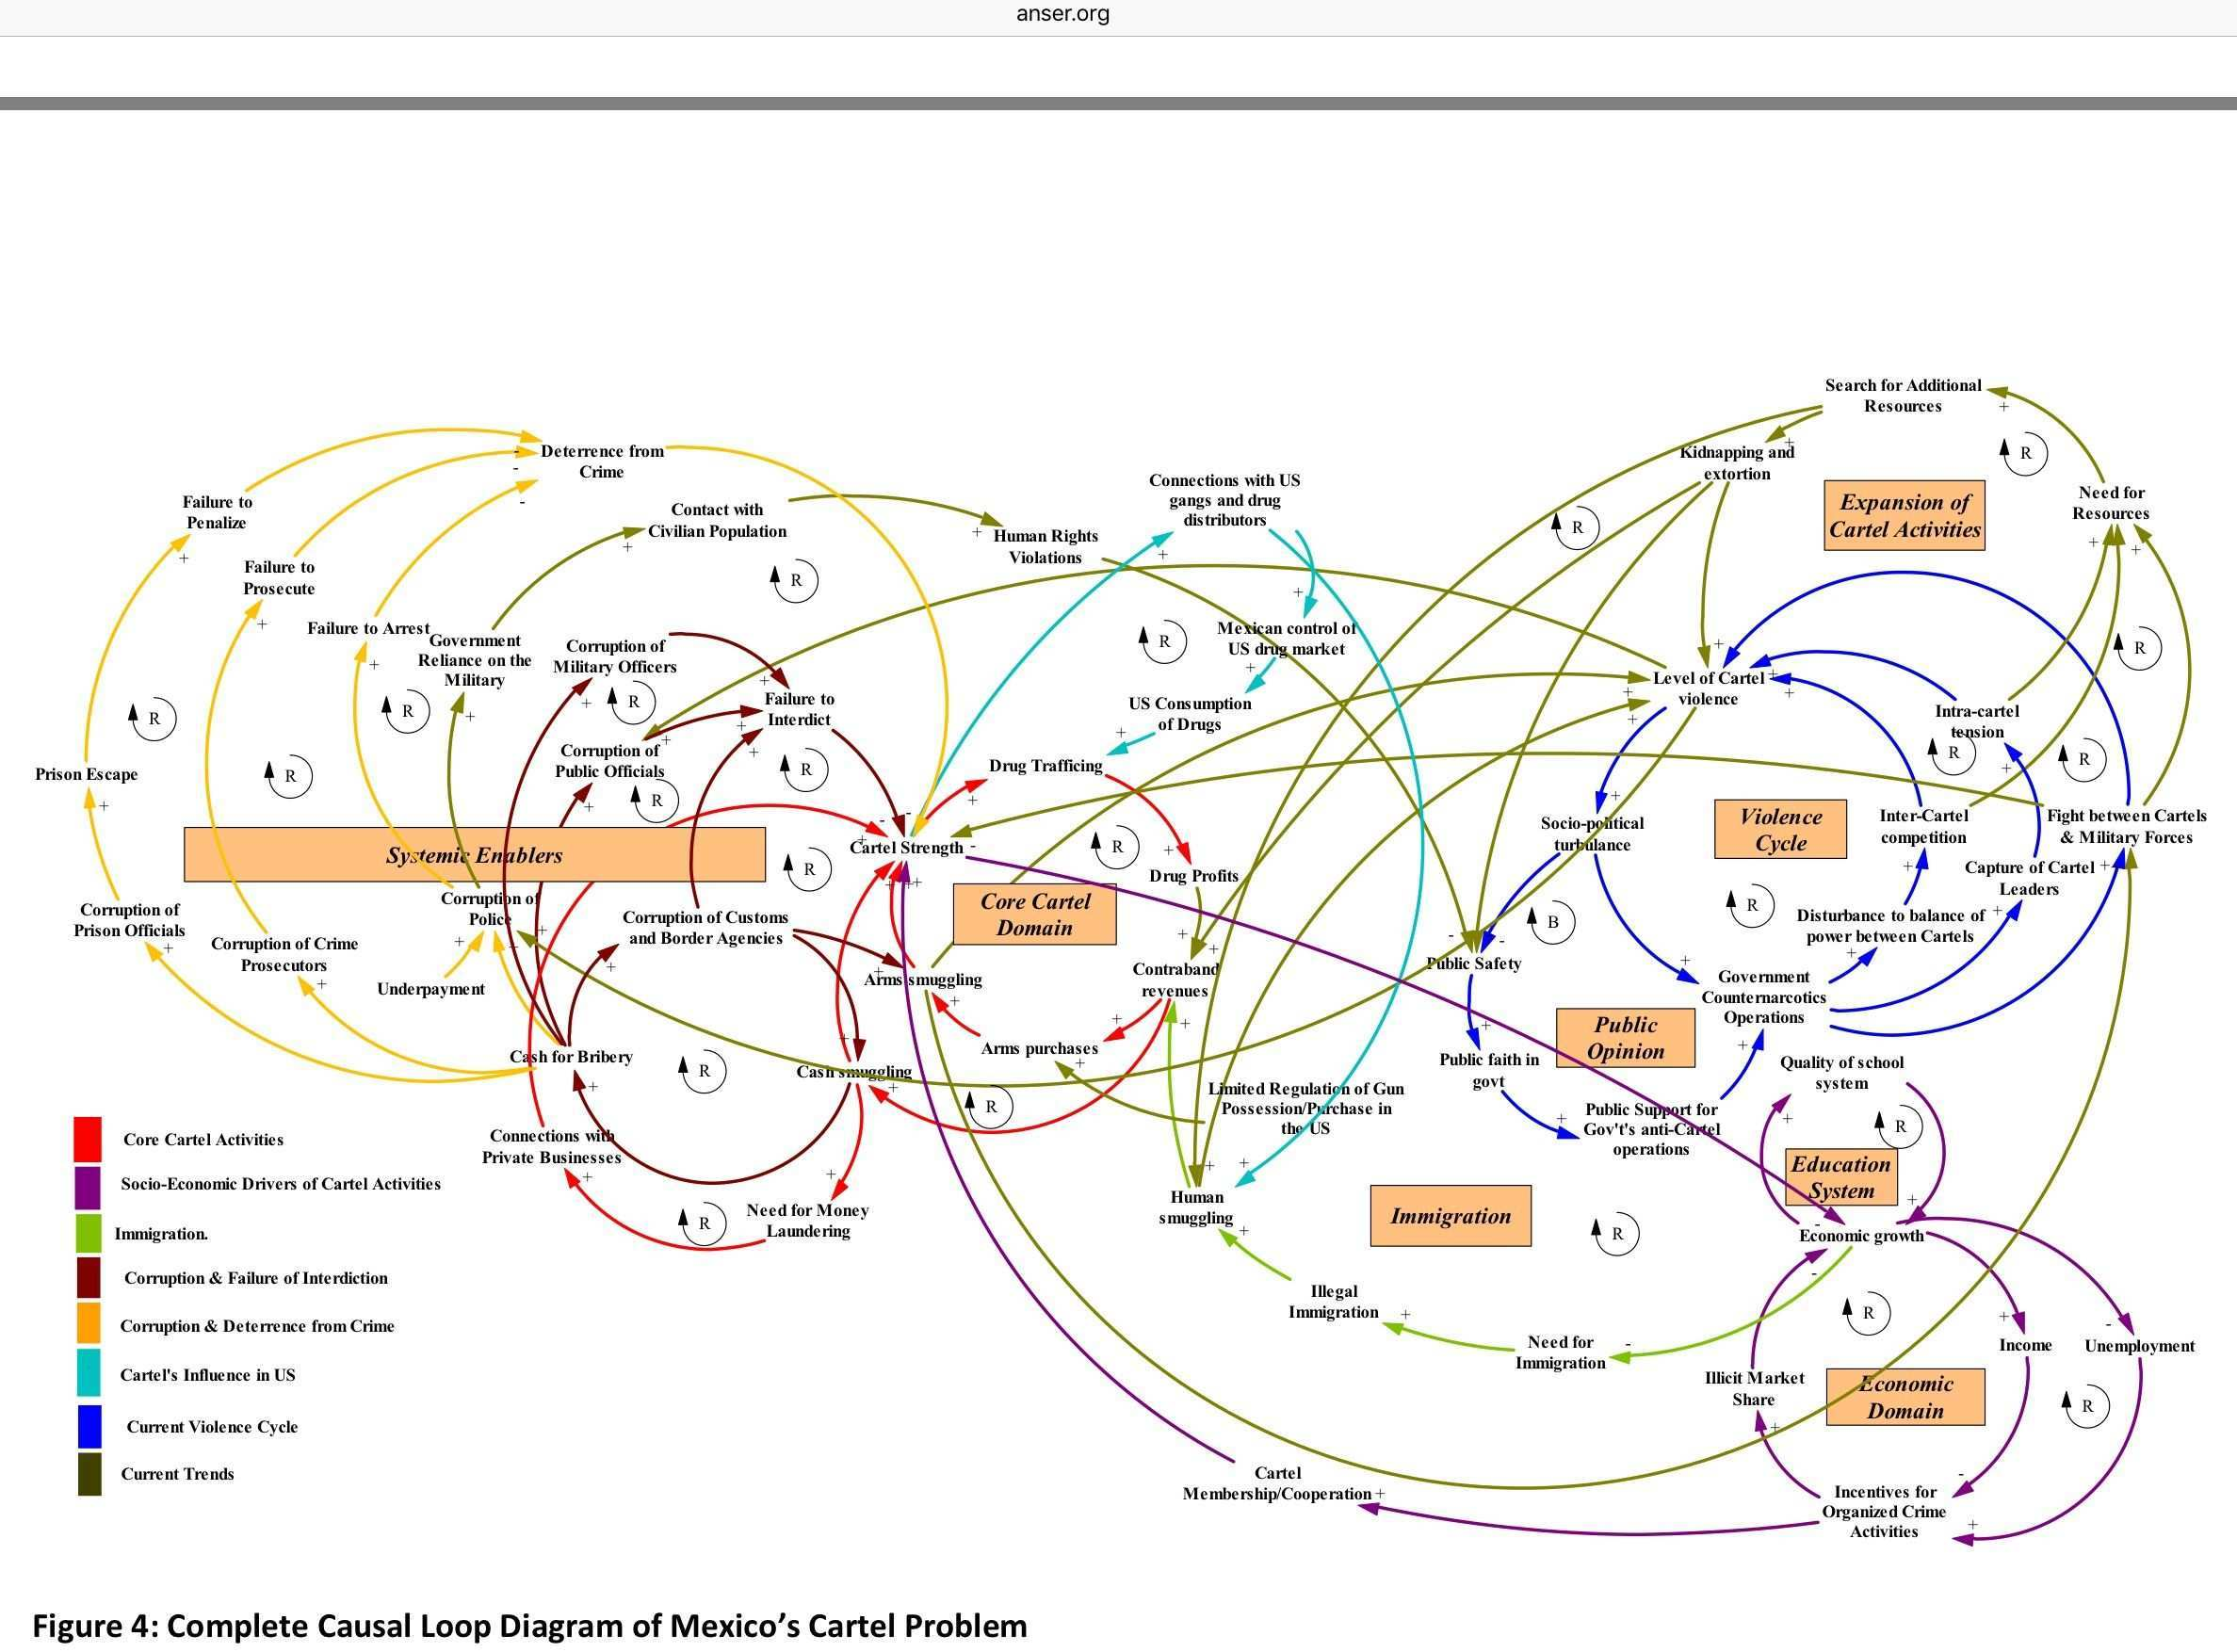 Causal Loop Diagram Of Mexico S Cartel Problem Systems Thinking System Map Concept Map